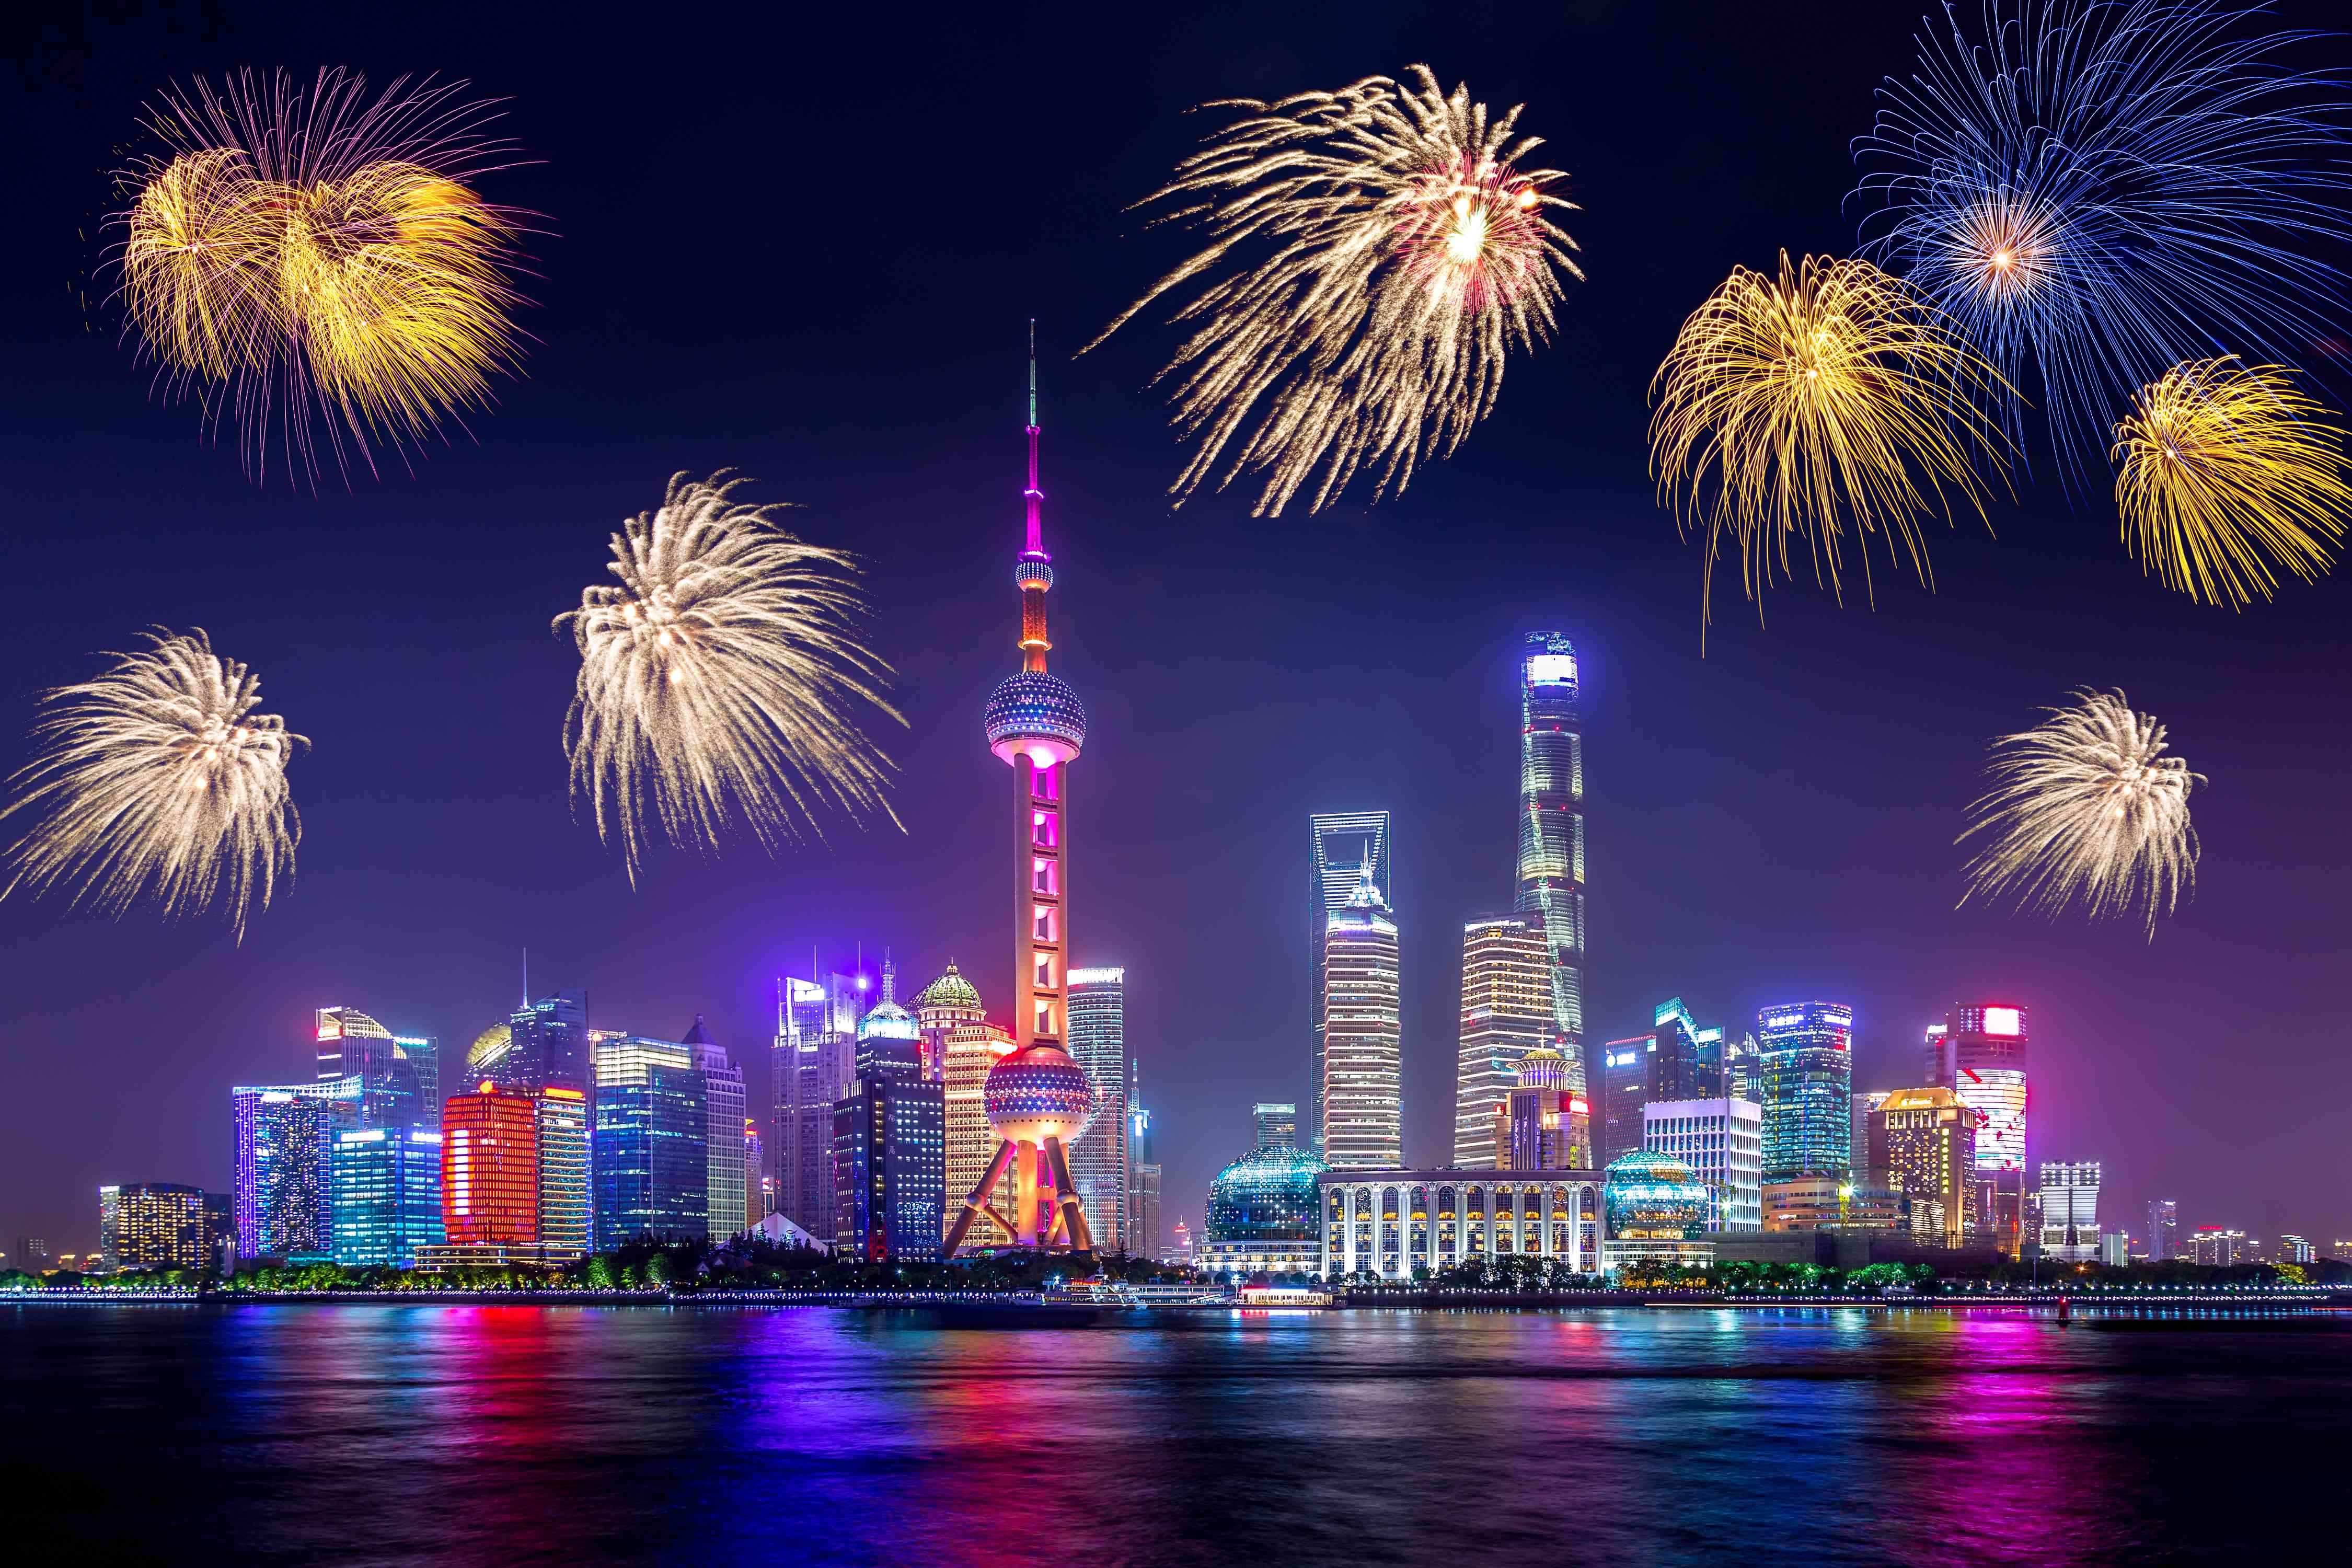 Fireworks over Shanghai for New Year's Eve